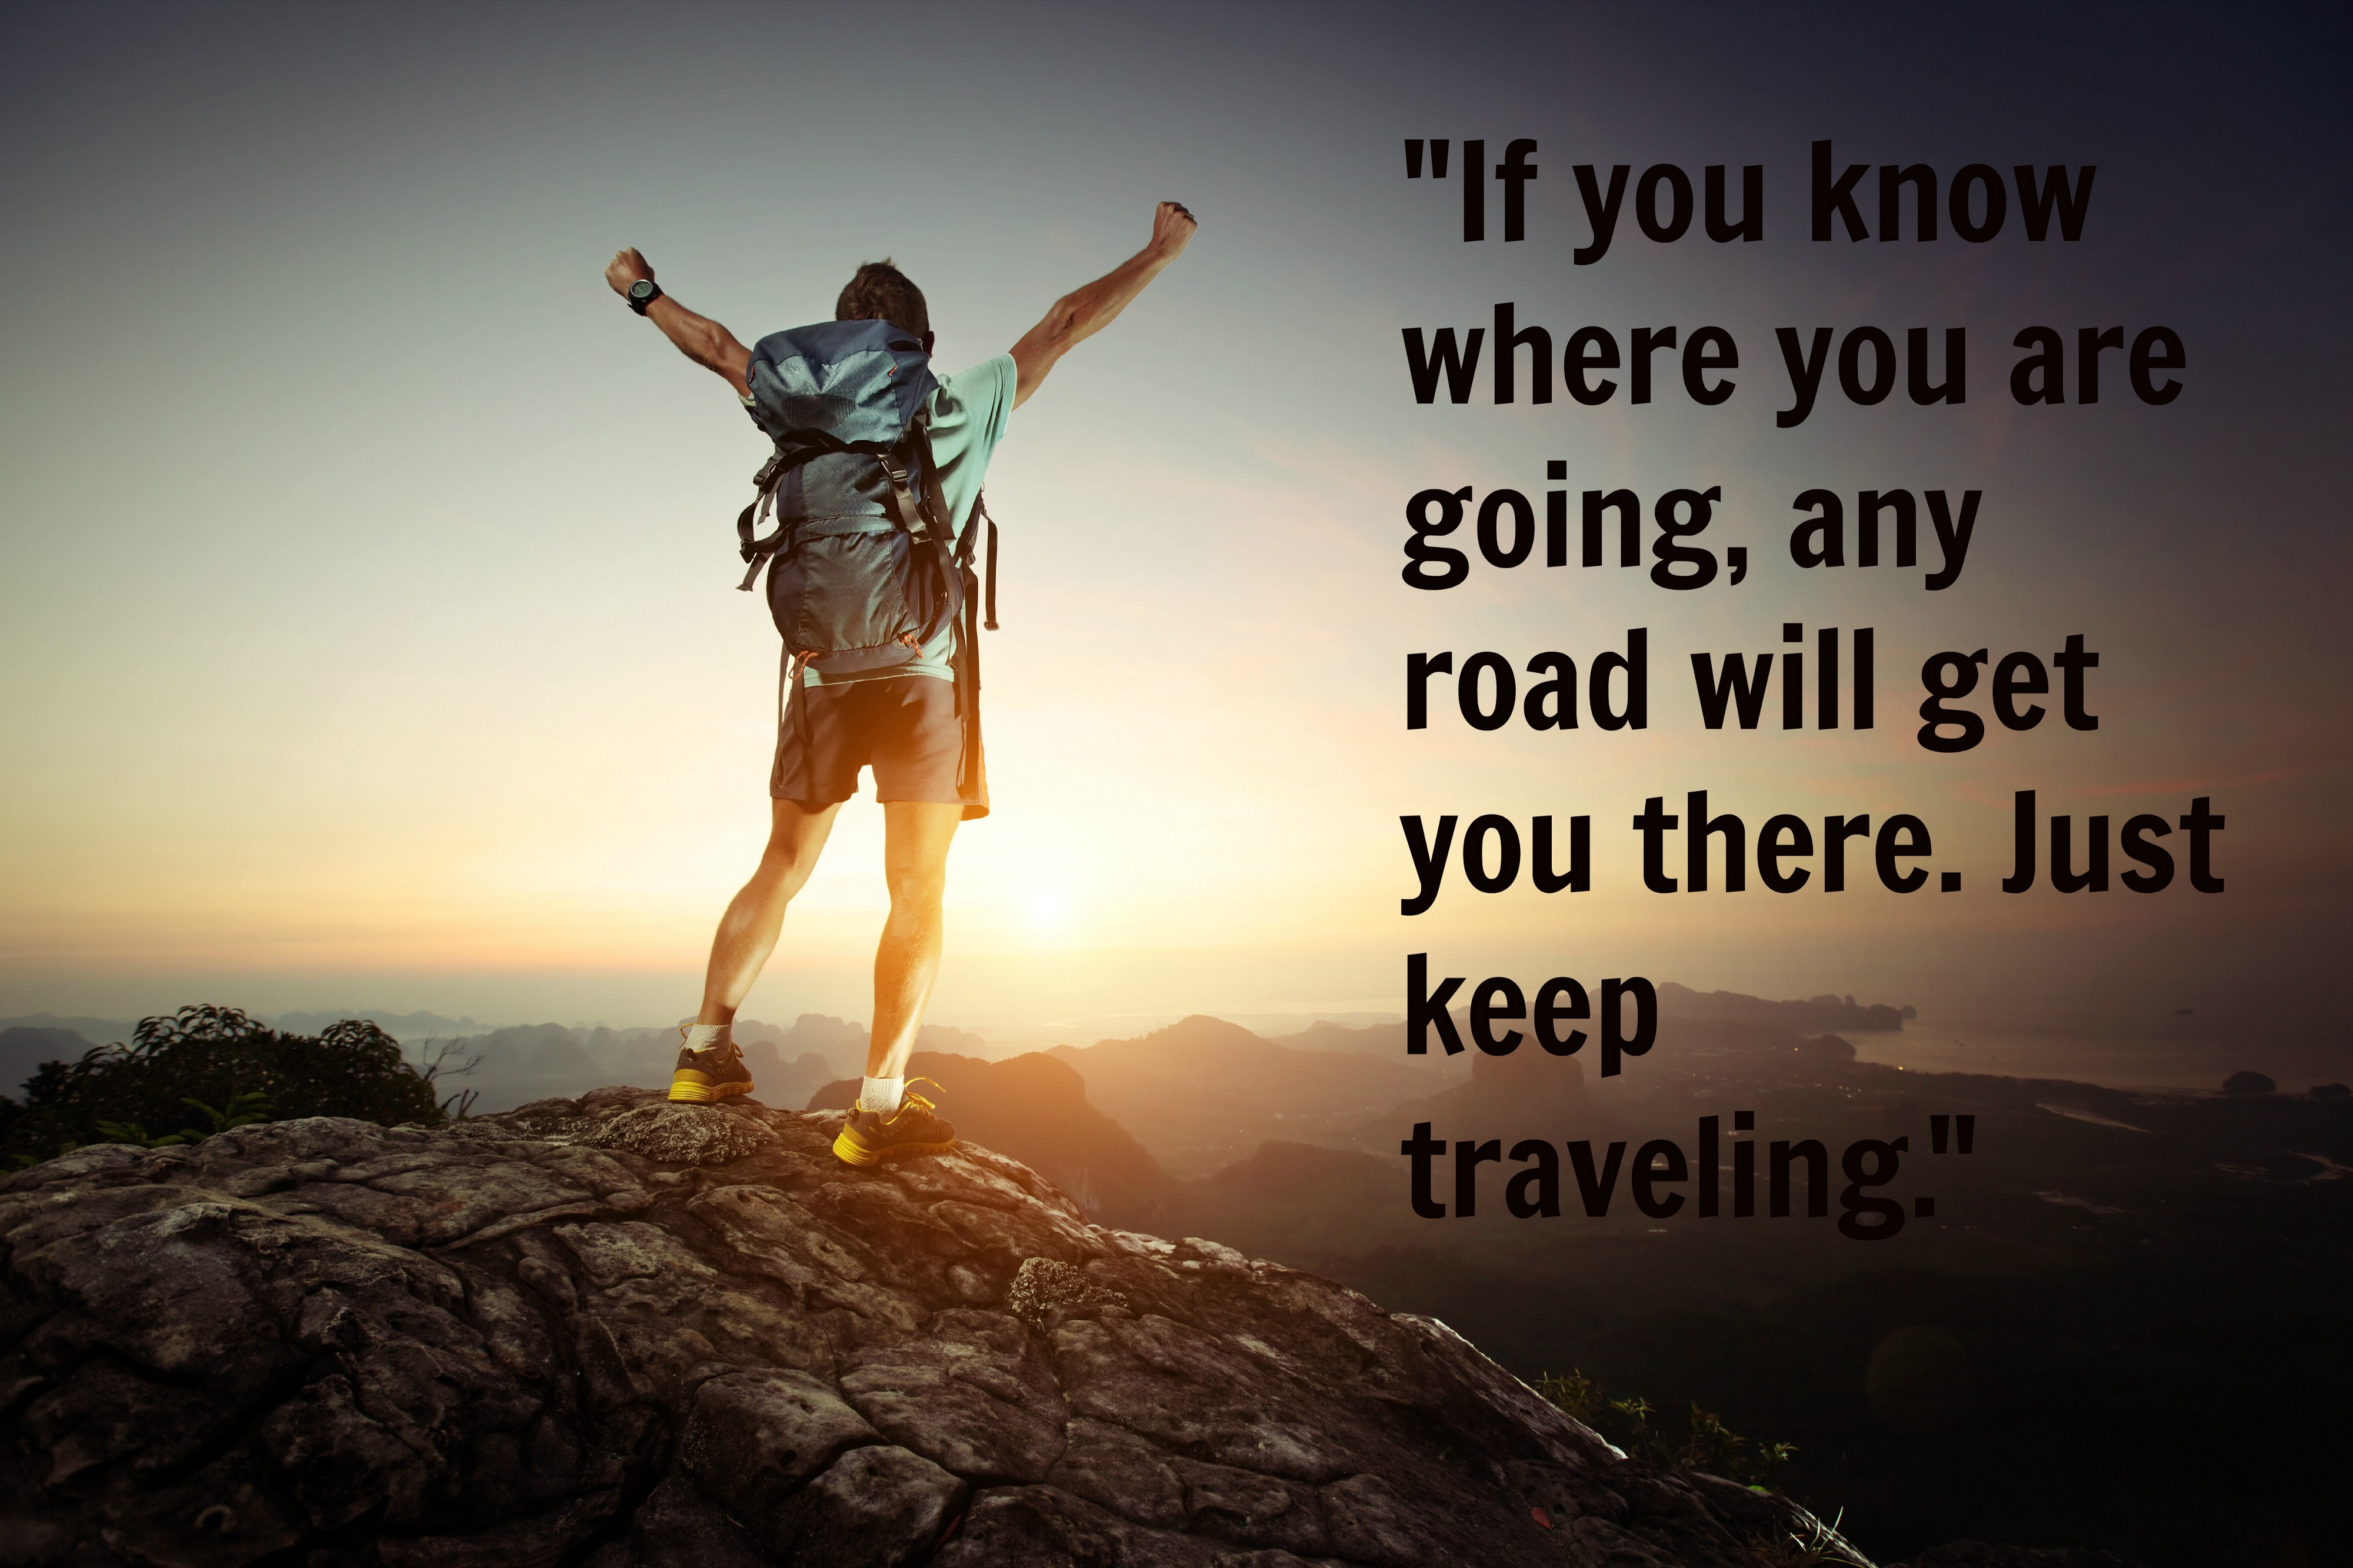 10 Best Travel Quotes that Inspire to Travel - The